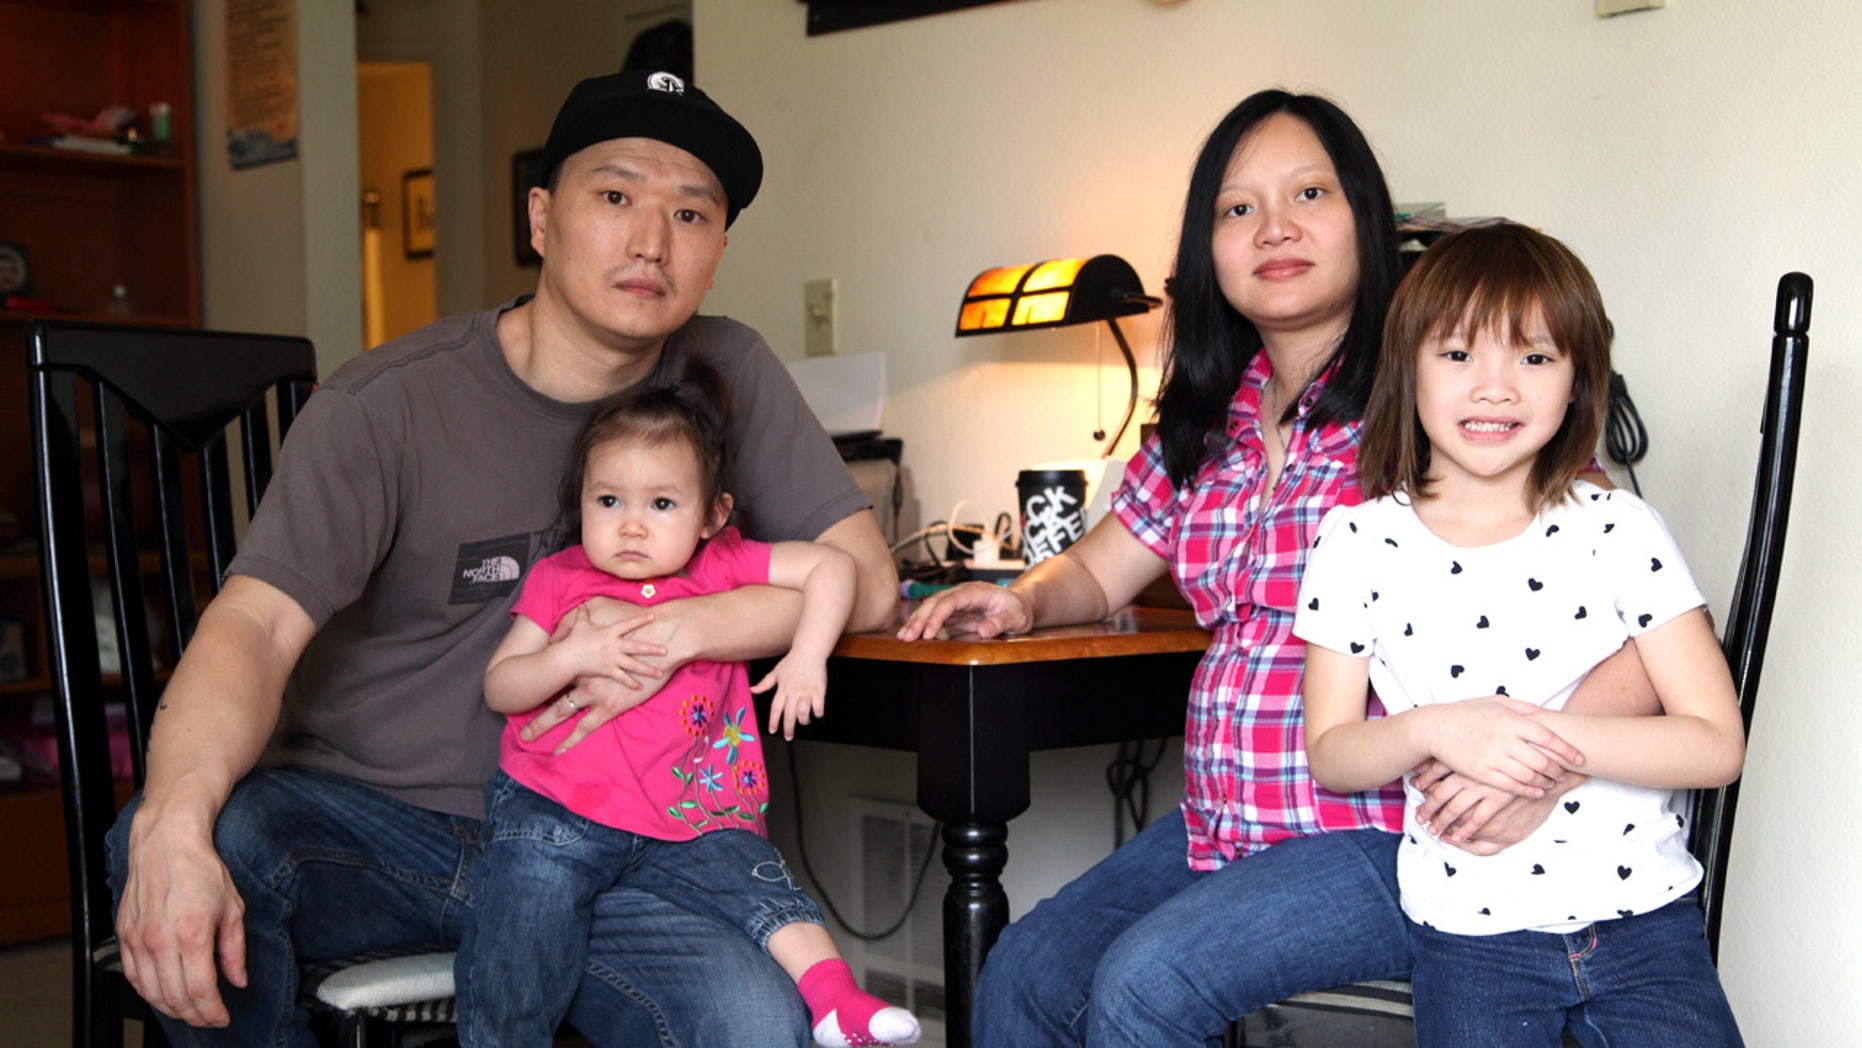 In this March 19, 2015, file photo, Korean adoptee Adam Crapser, left, poses with daughters, Christal and Christina and his wife, Anh Nguyen, in the family's living room in Vancouver, Wash.